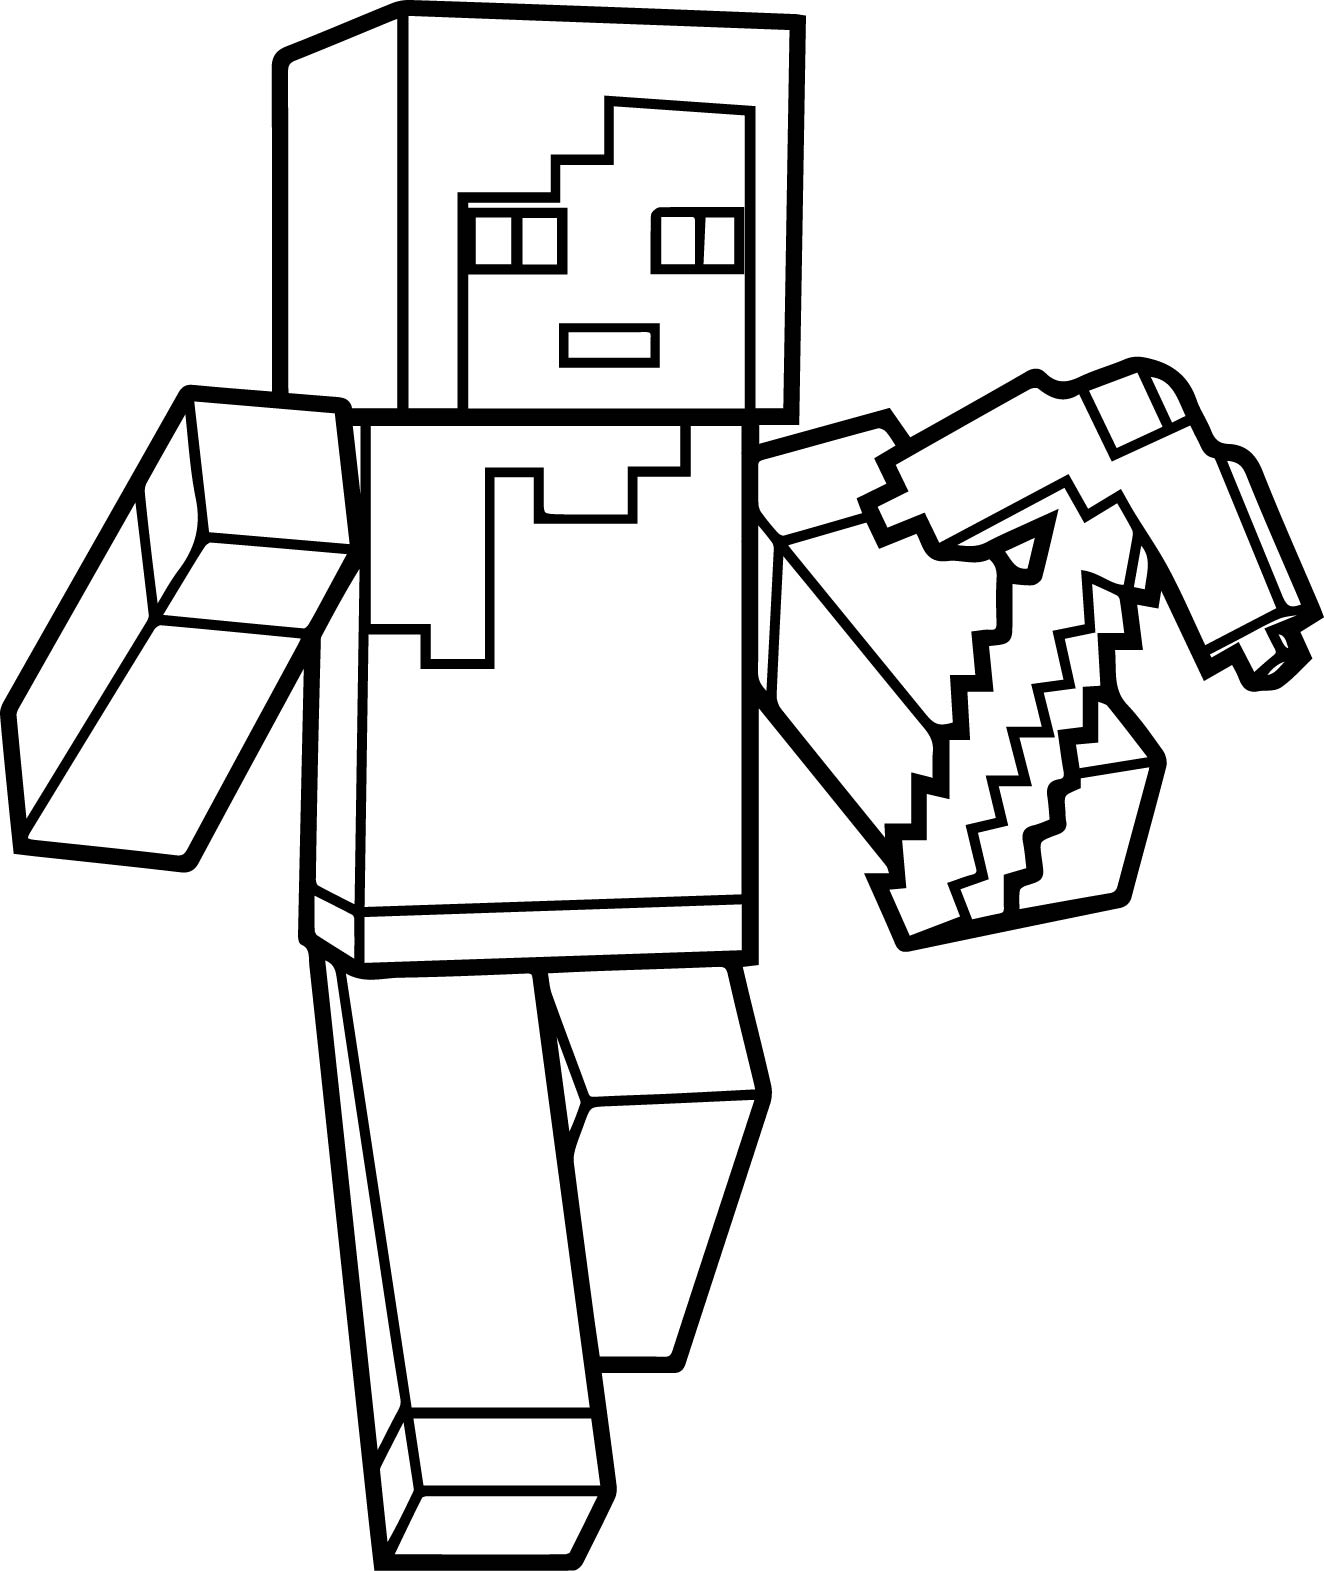 1324x1571 Minecraft Clipart Black And White